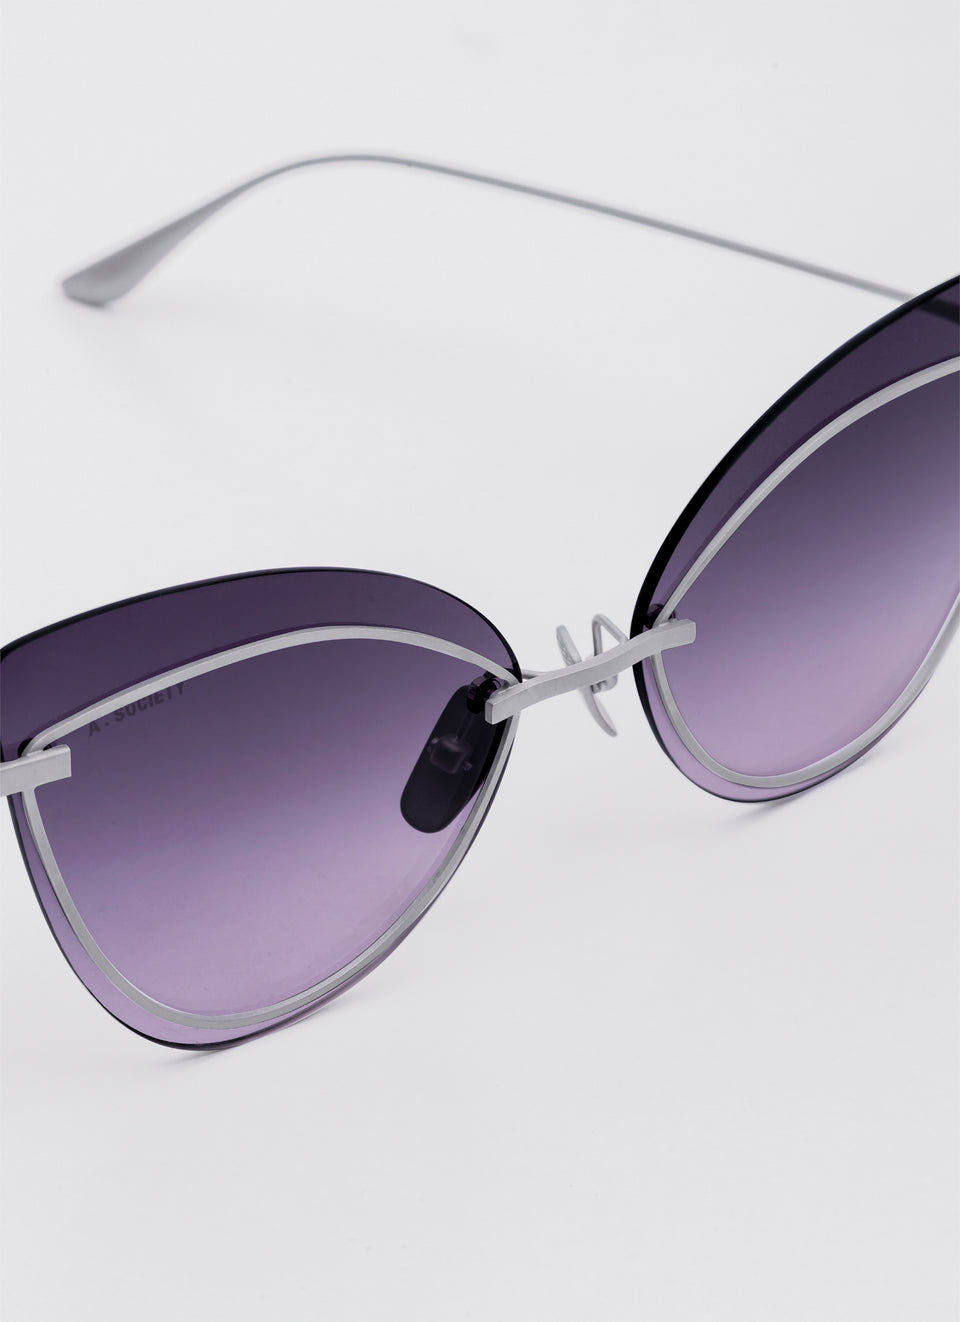 A SOCIETY LINDA - Purple Titanium Cat-Eye Sunglasses Detail